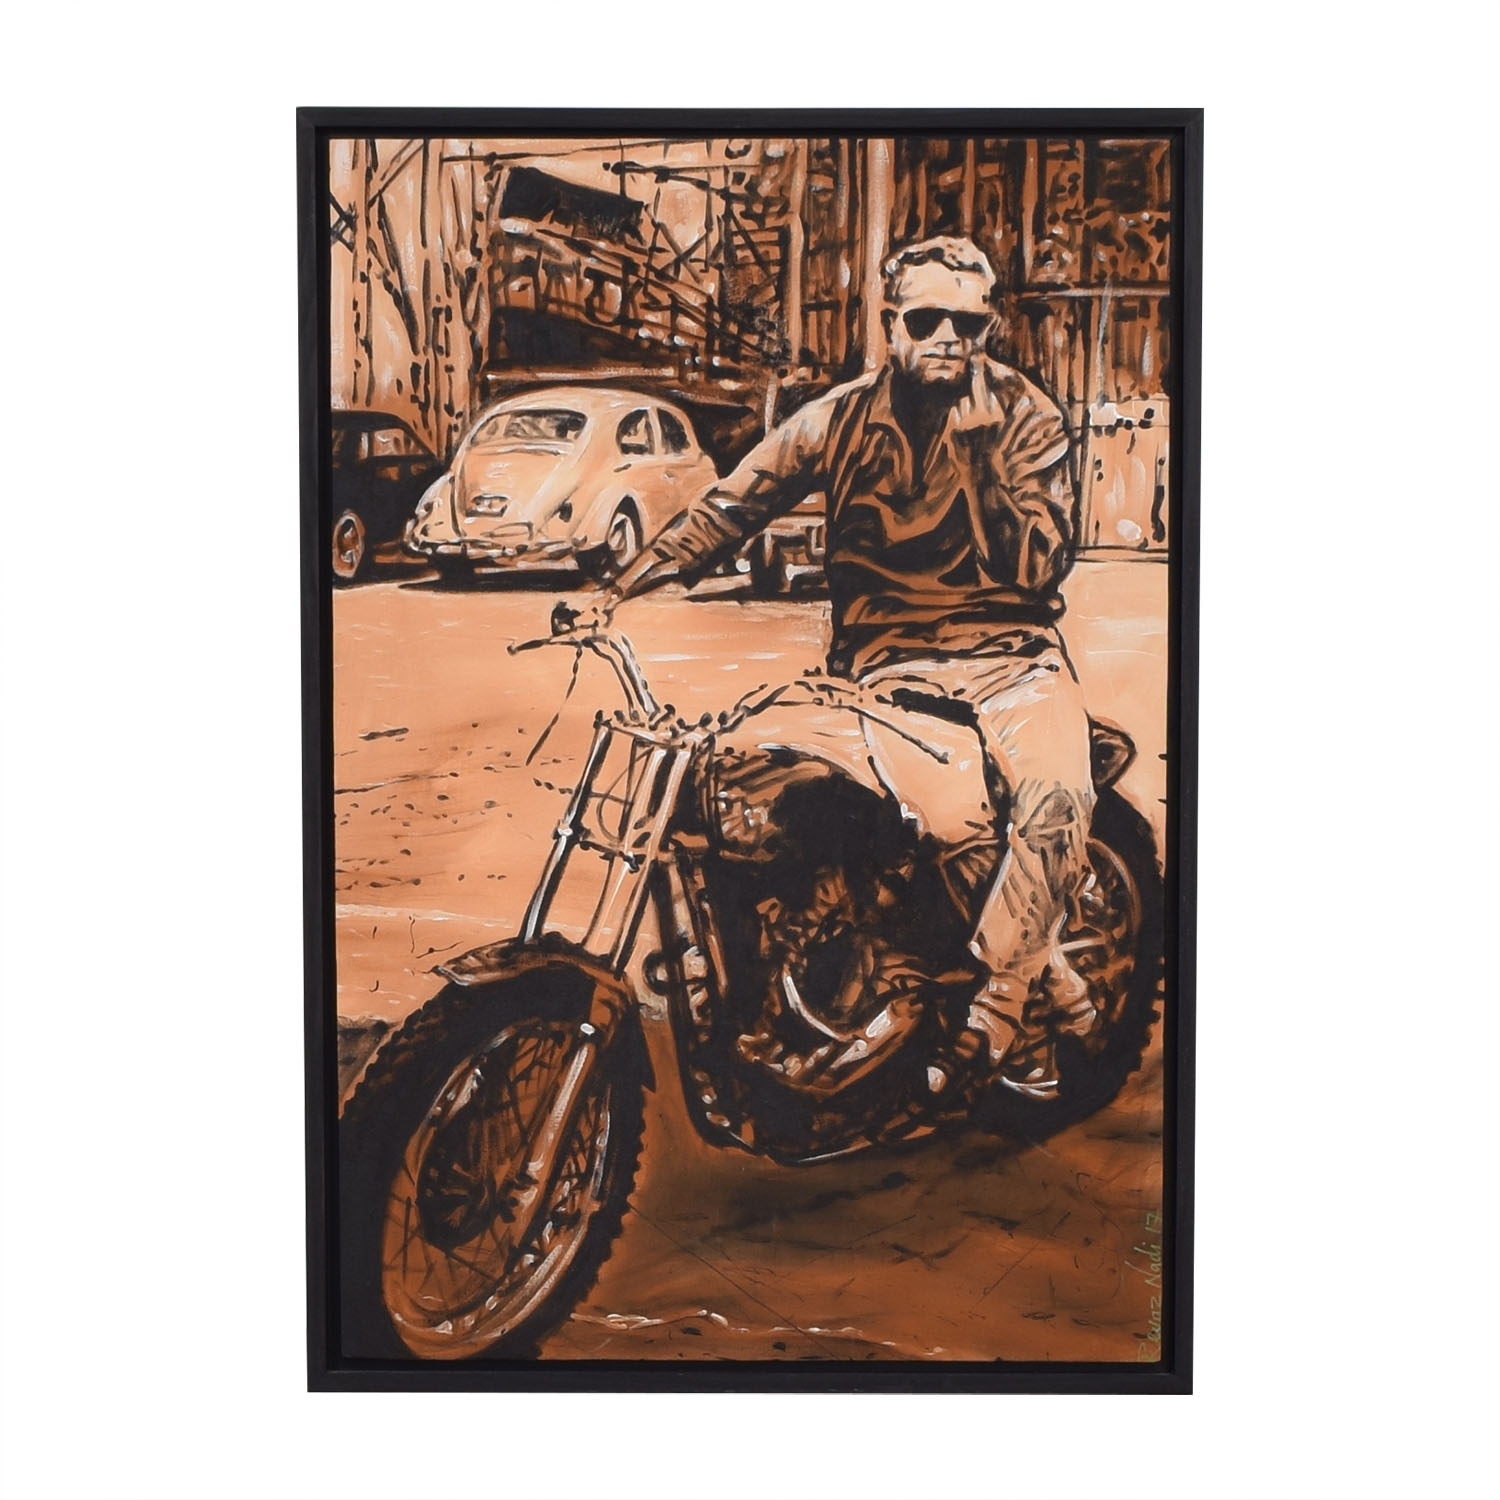 Reyaz Nadi Steve McQueen Framed Painting on sale